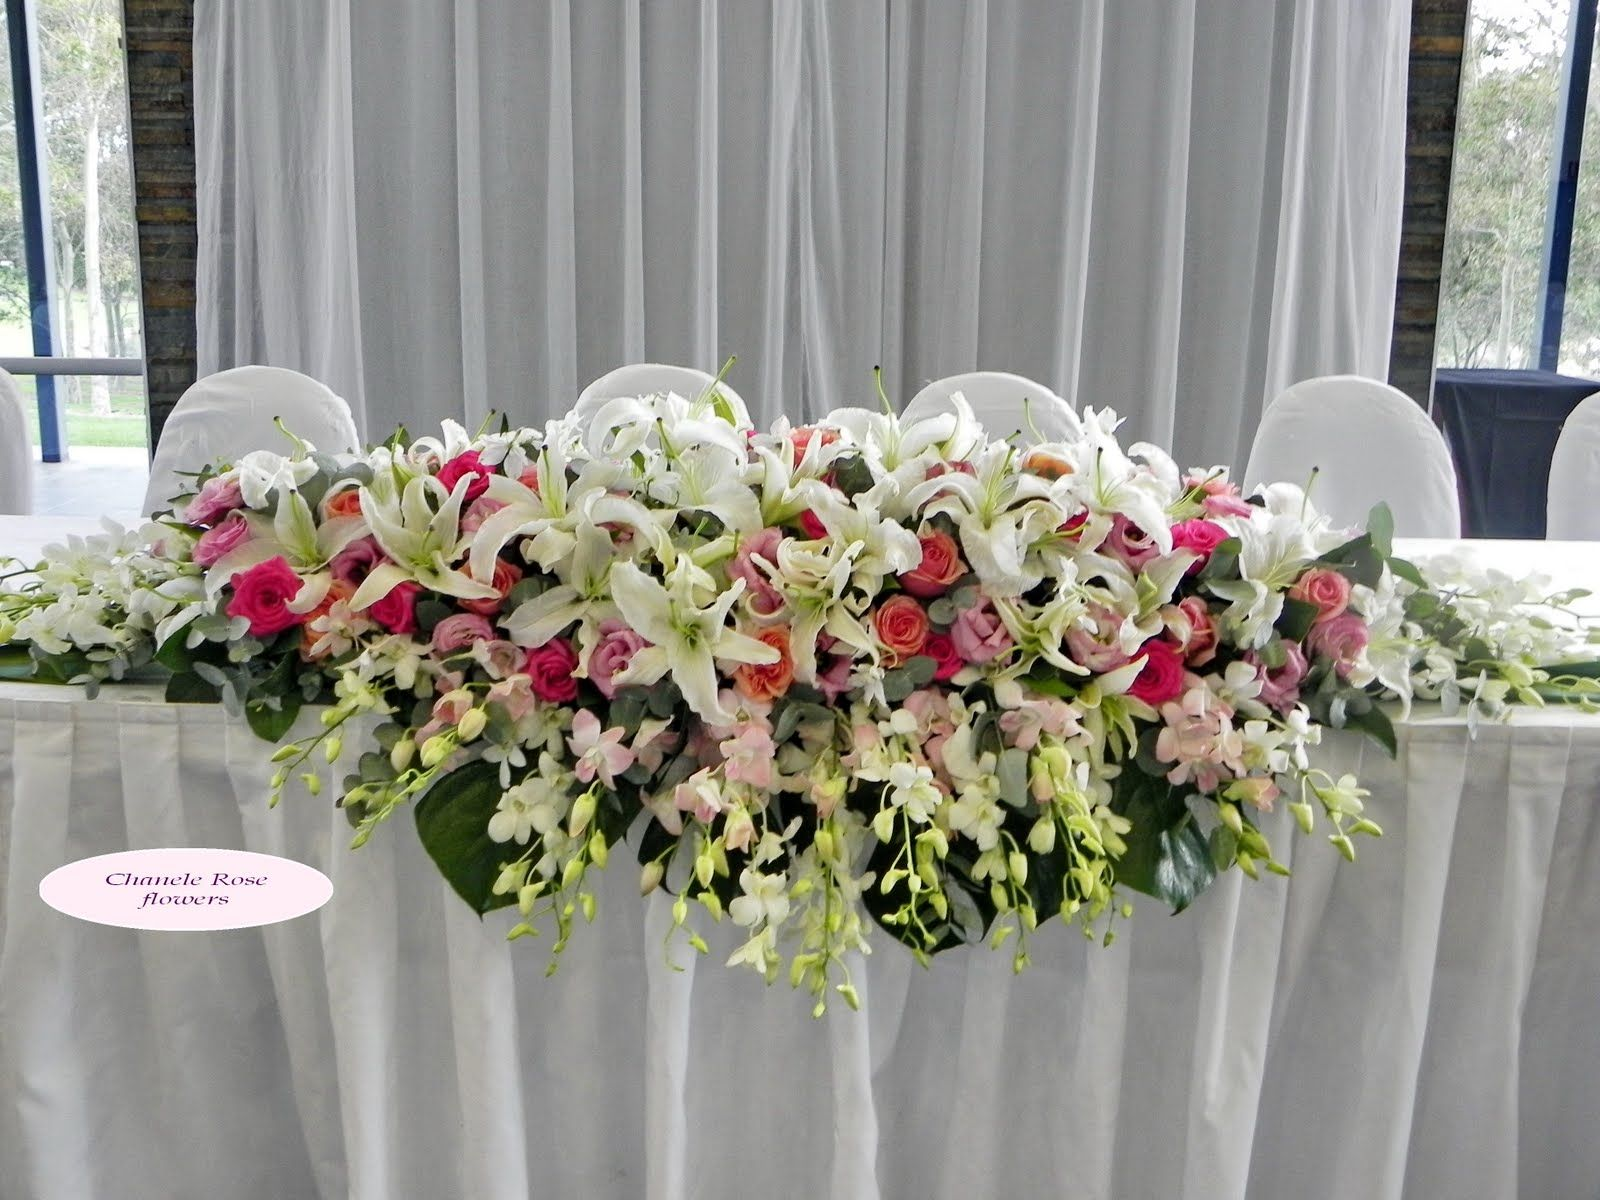 Wedding flower arrangements for long table 224 my vow - Flowers for table decorations ...